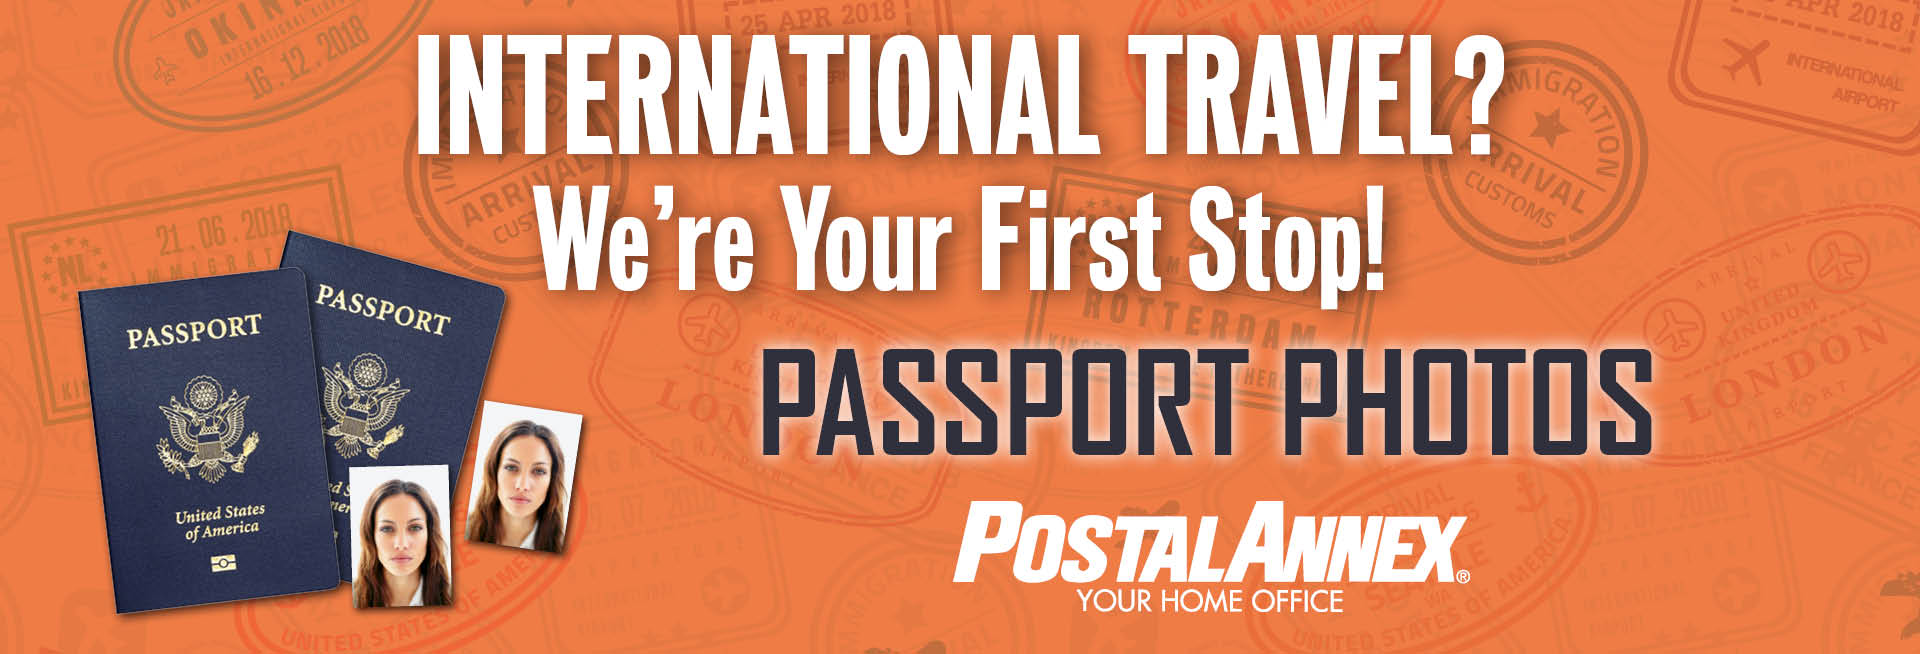 International Travel? We